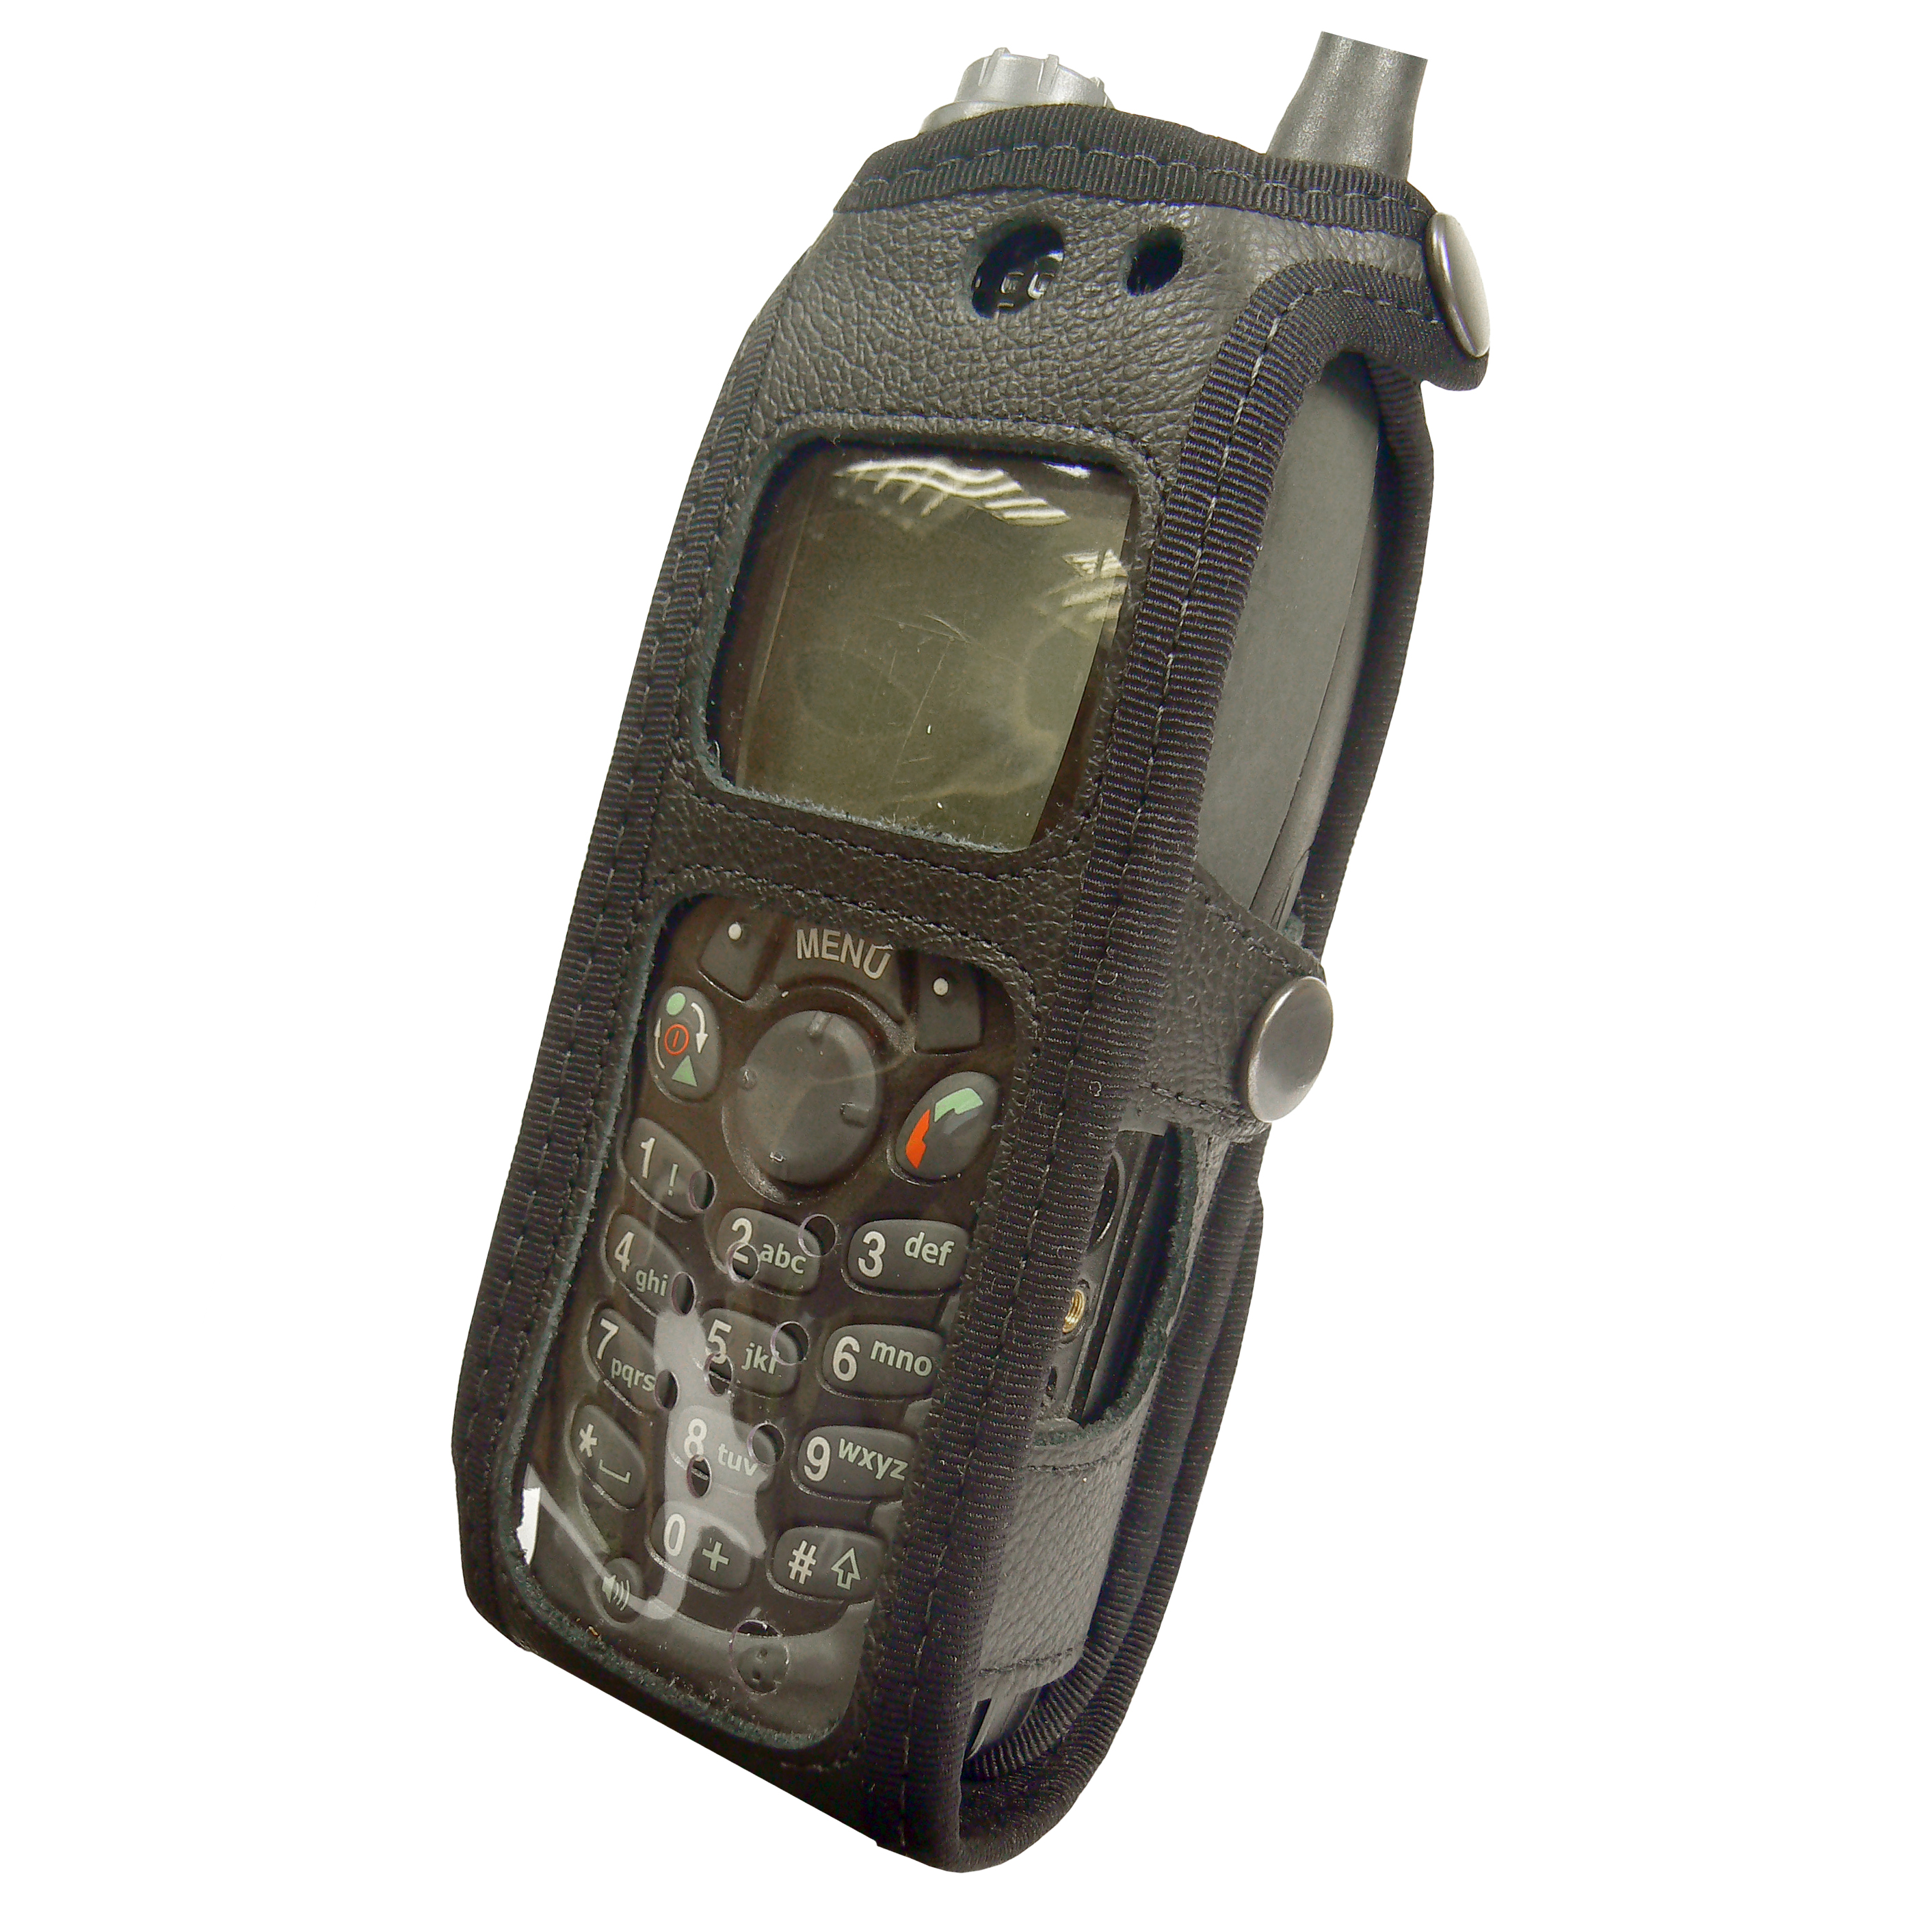 Motorola MTH650 Tetra Radio Case Leather with Click-On